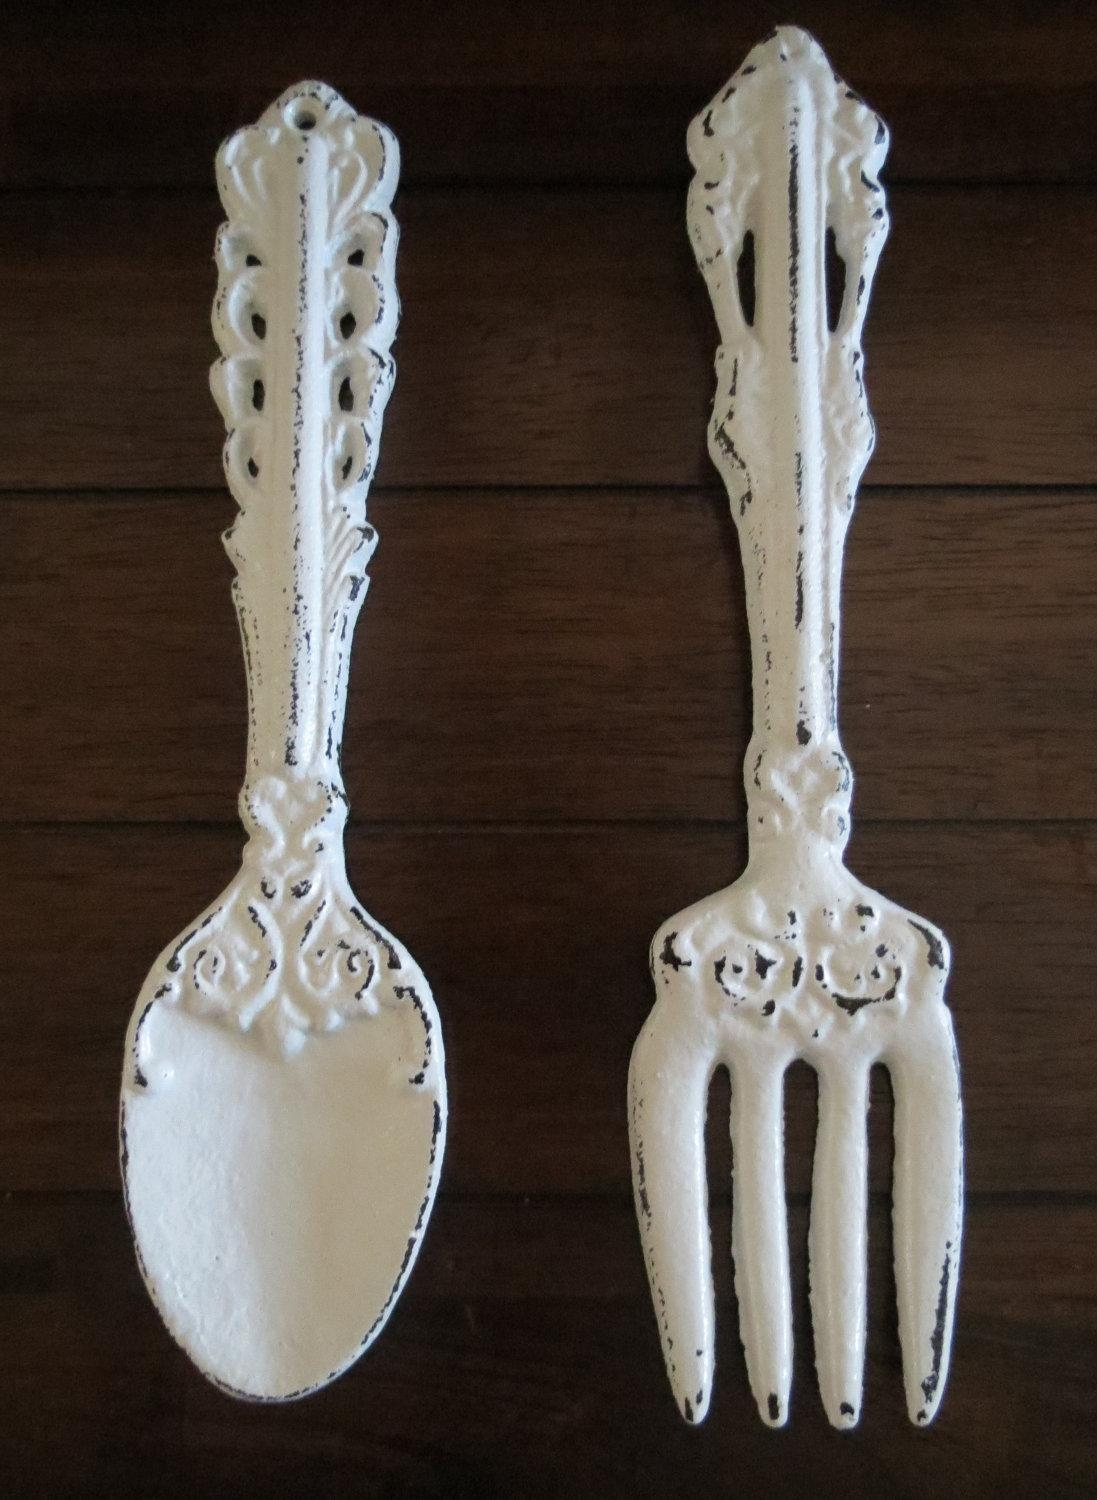 Fork And Spoon Wall Art / Antique White Or Pick Color / Large Within Large Utensil Wall Art (Image 2 of 20)